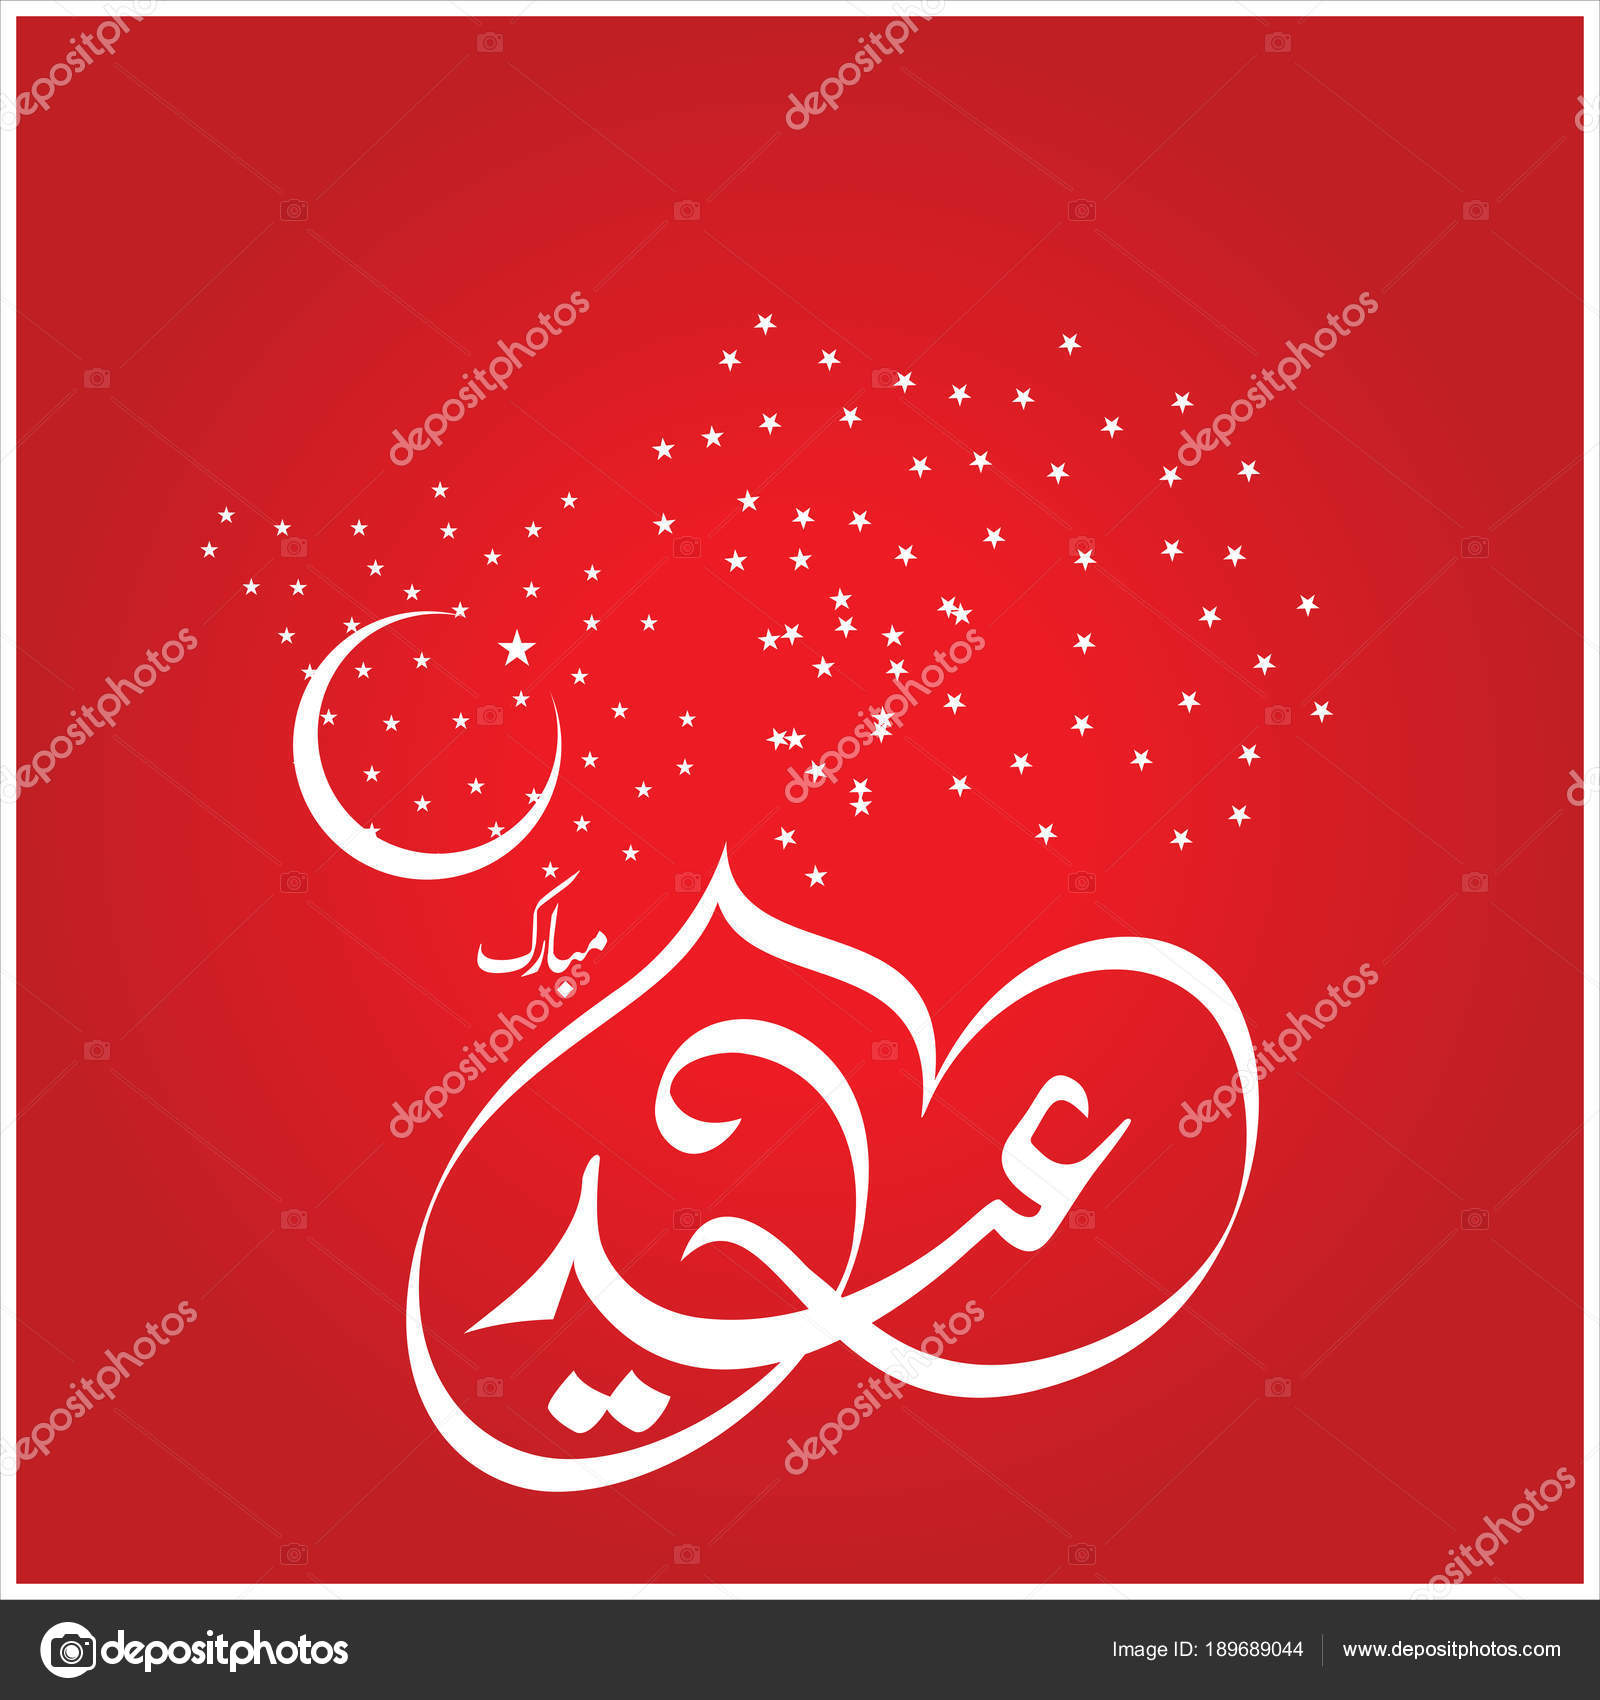 Happy eid mubarak arabic calligraphy greeting card muslim happy eid mubarak arabic calligraphy greeting card muslim celebrating festival stock photo m4hsunfo